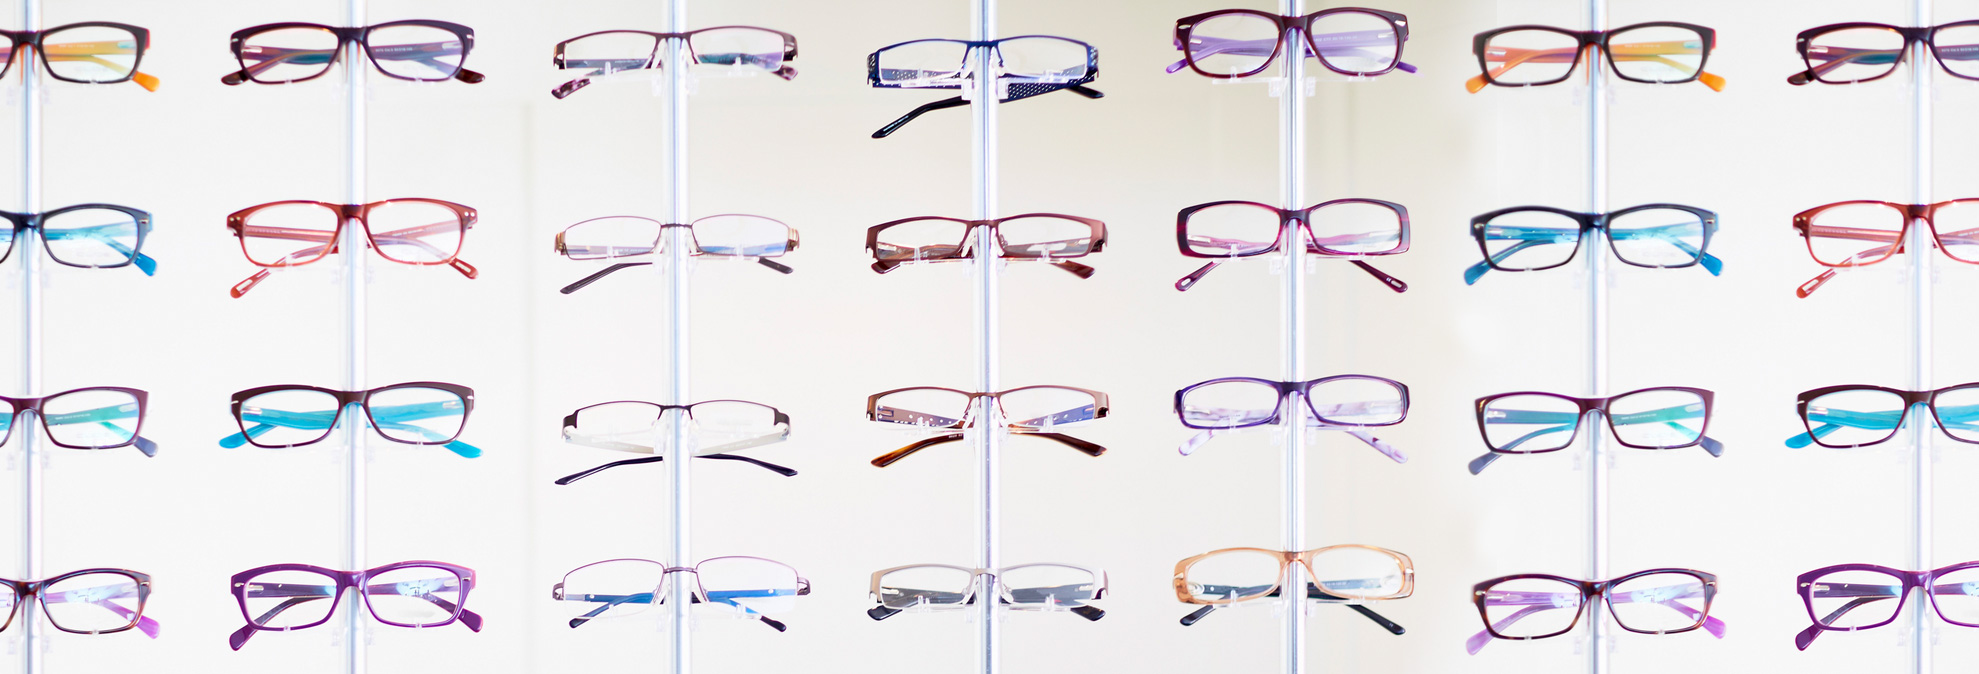 a94dae77bab4 8 Great Ways to Save on the Cost of Eyeglasses - Consumer Reports